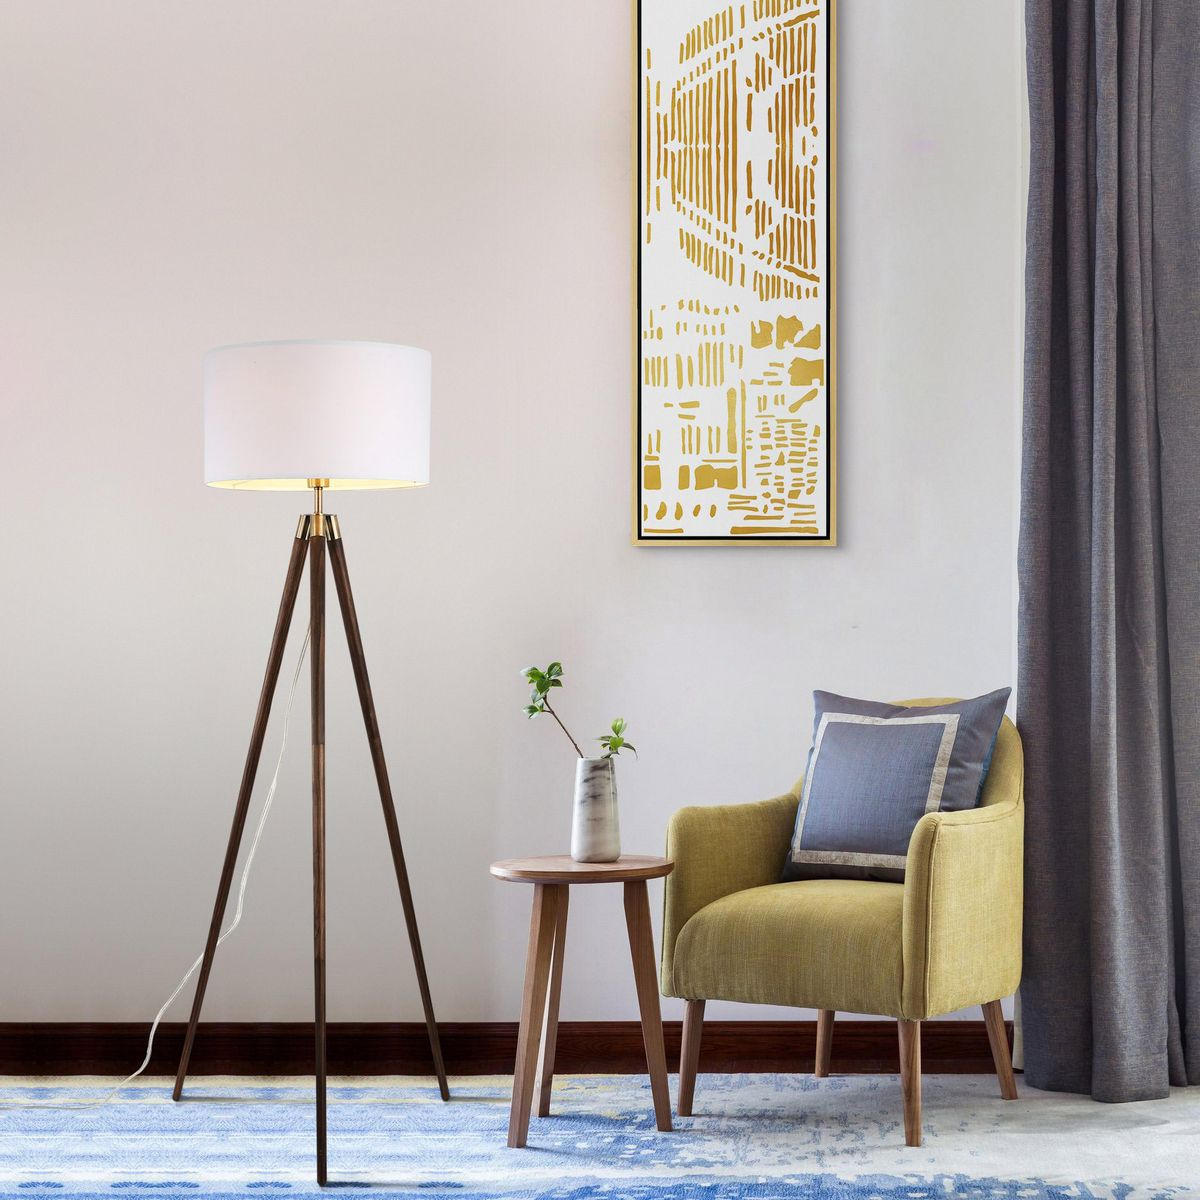 Light up your entertainment spaces with glass floor lamps